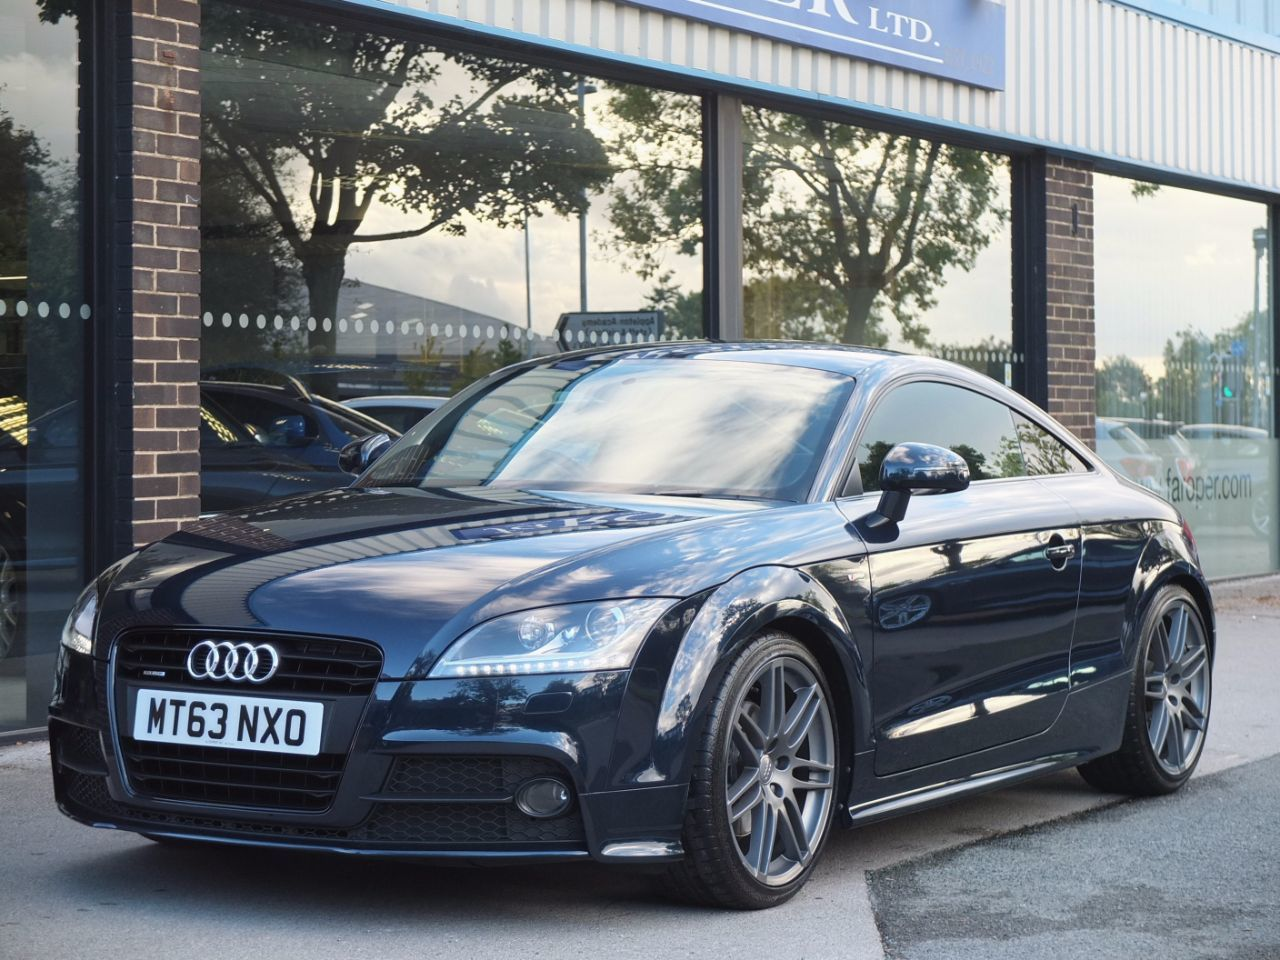 Audi TT Coupe 2.0 TDI quattro Black Edition S Tronic Coupe Diesel Midnight Blue Metallic Audi Exclusive Paint FinishAudi TT Coupe 2.0 TDI quattro Black Edition S Tronic Coupe Diesel Midnight Blue Metallic Audi Exclusive Paint Finish at fa Roper Ltd Bradford